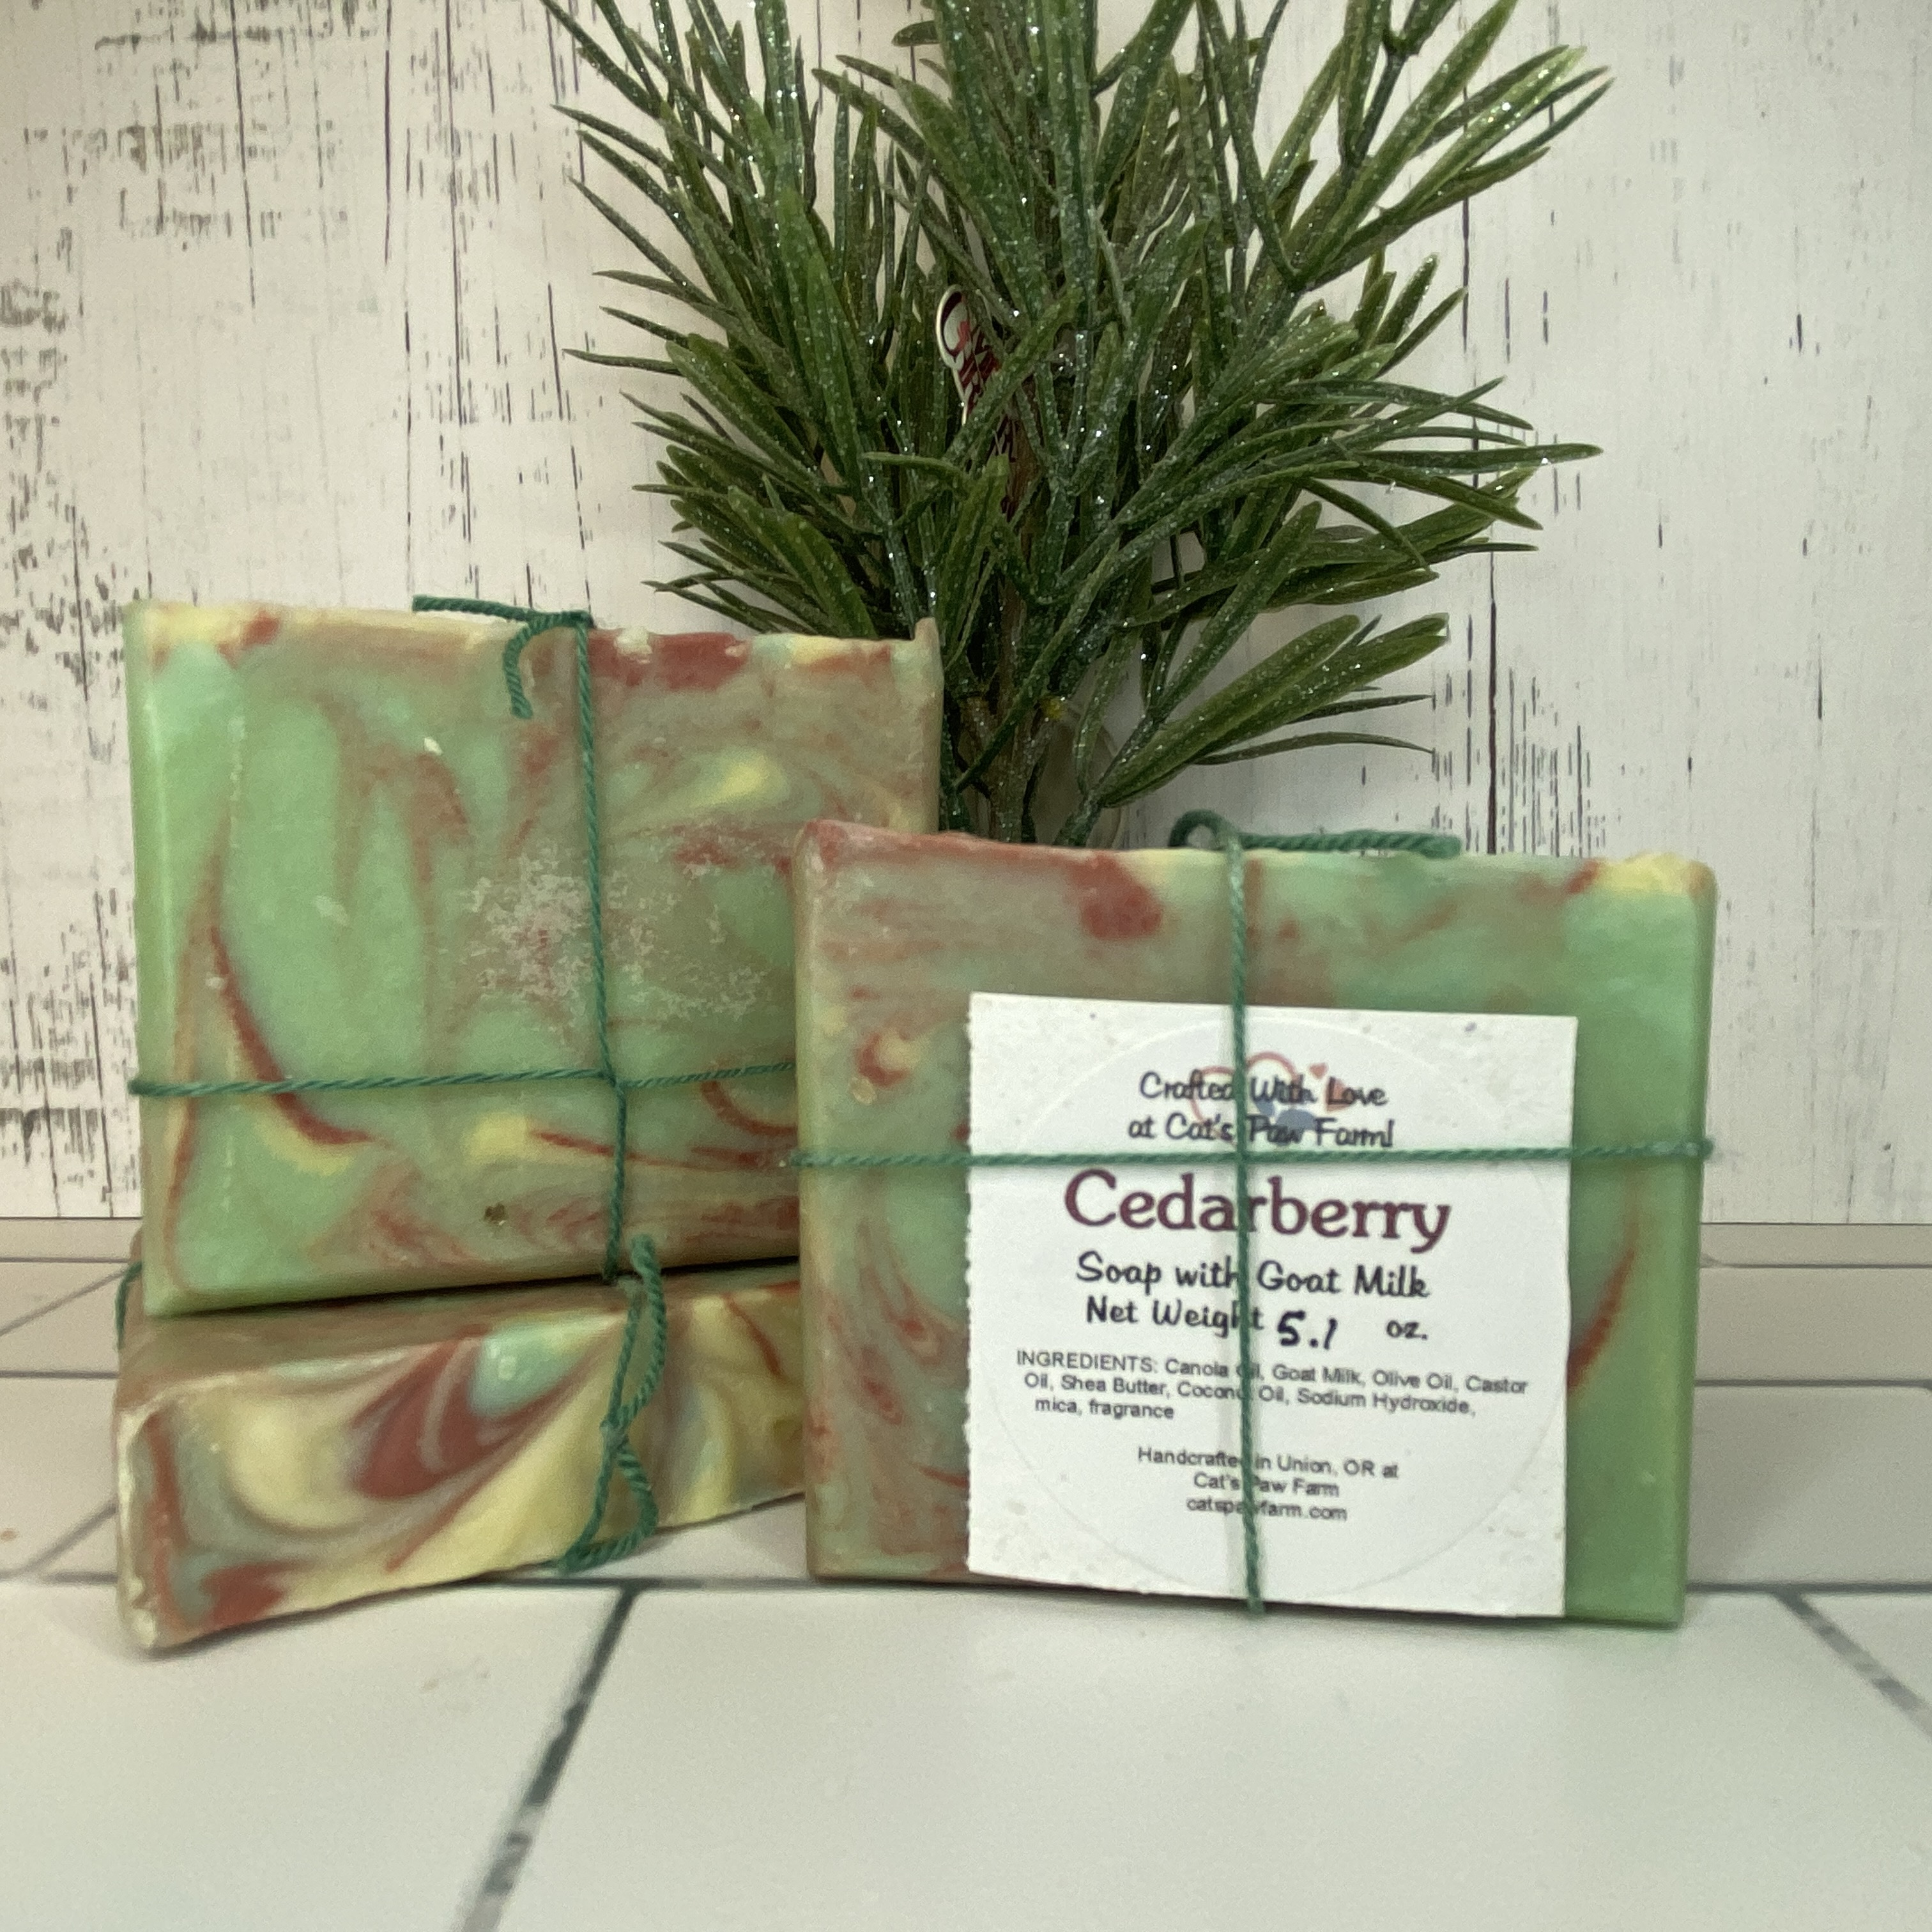 Cedarberry Scented Soap with Goat Milk